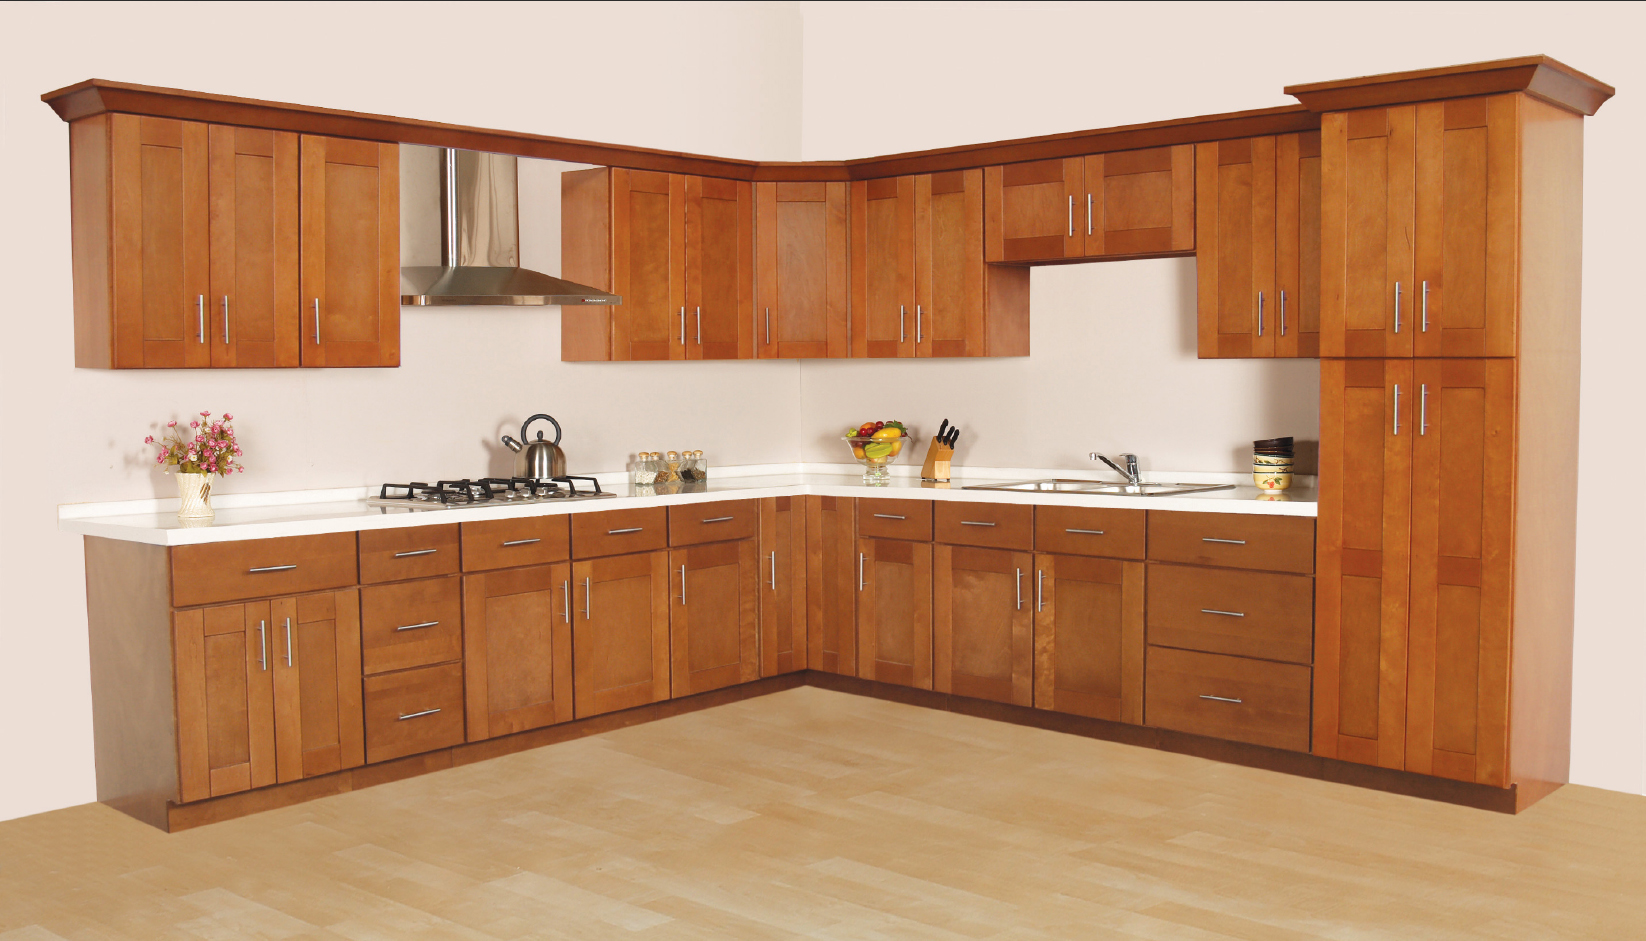 kitchen cabinet designer pictures of designs menards price and details home